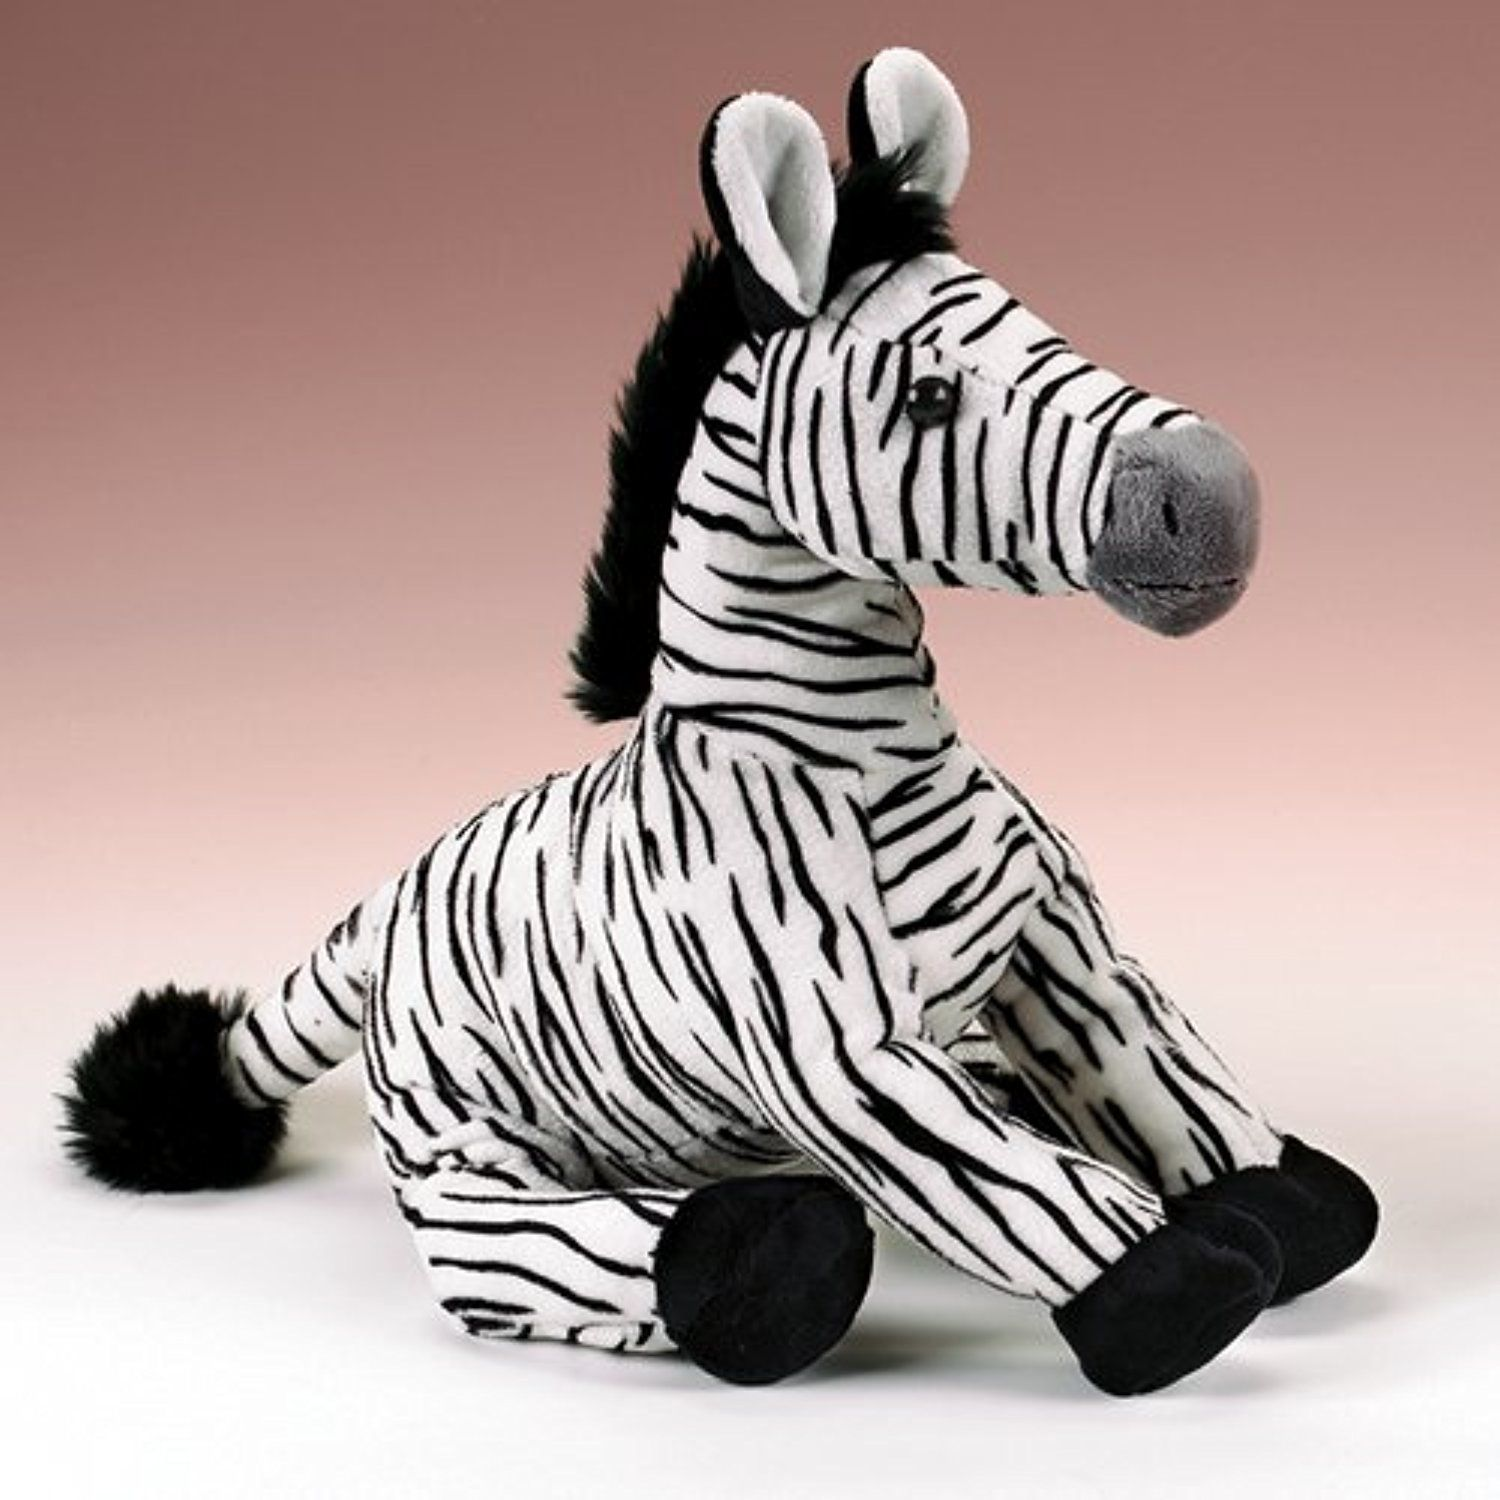 Zebra Stuffed Animal Plush Toy 14 H Learn More By Visiting The